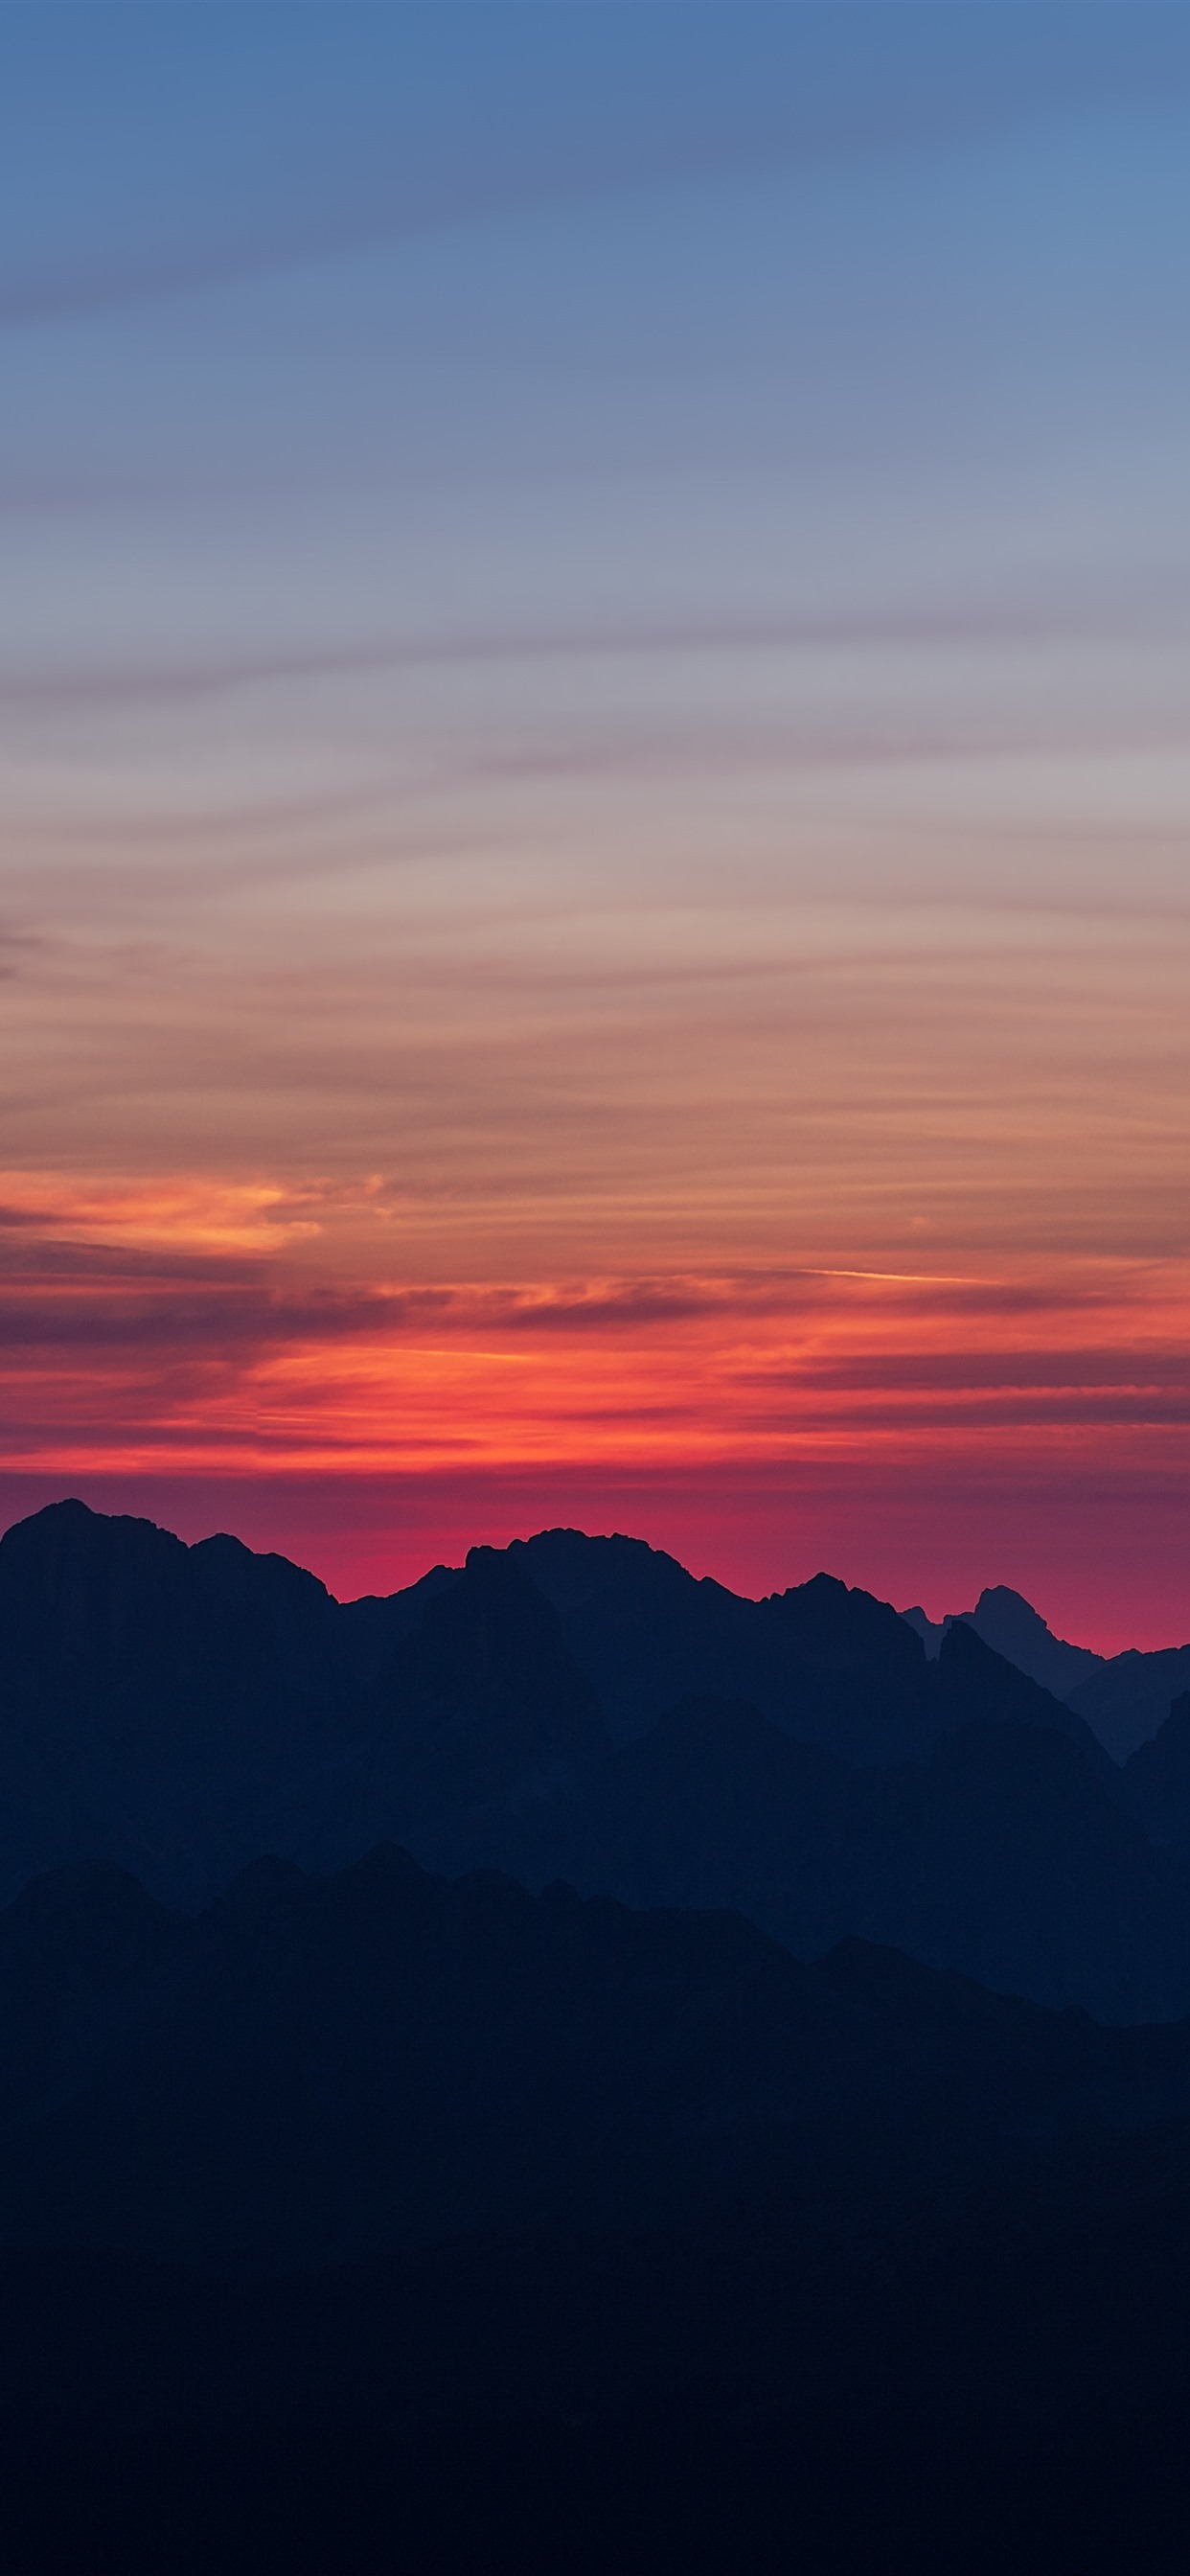 Mountains Sunset Sky Clouds 1242x2688 Iphone 11 Pro Xs Max Wallpaper Background Picture Image